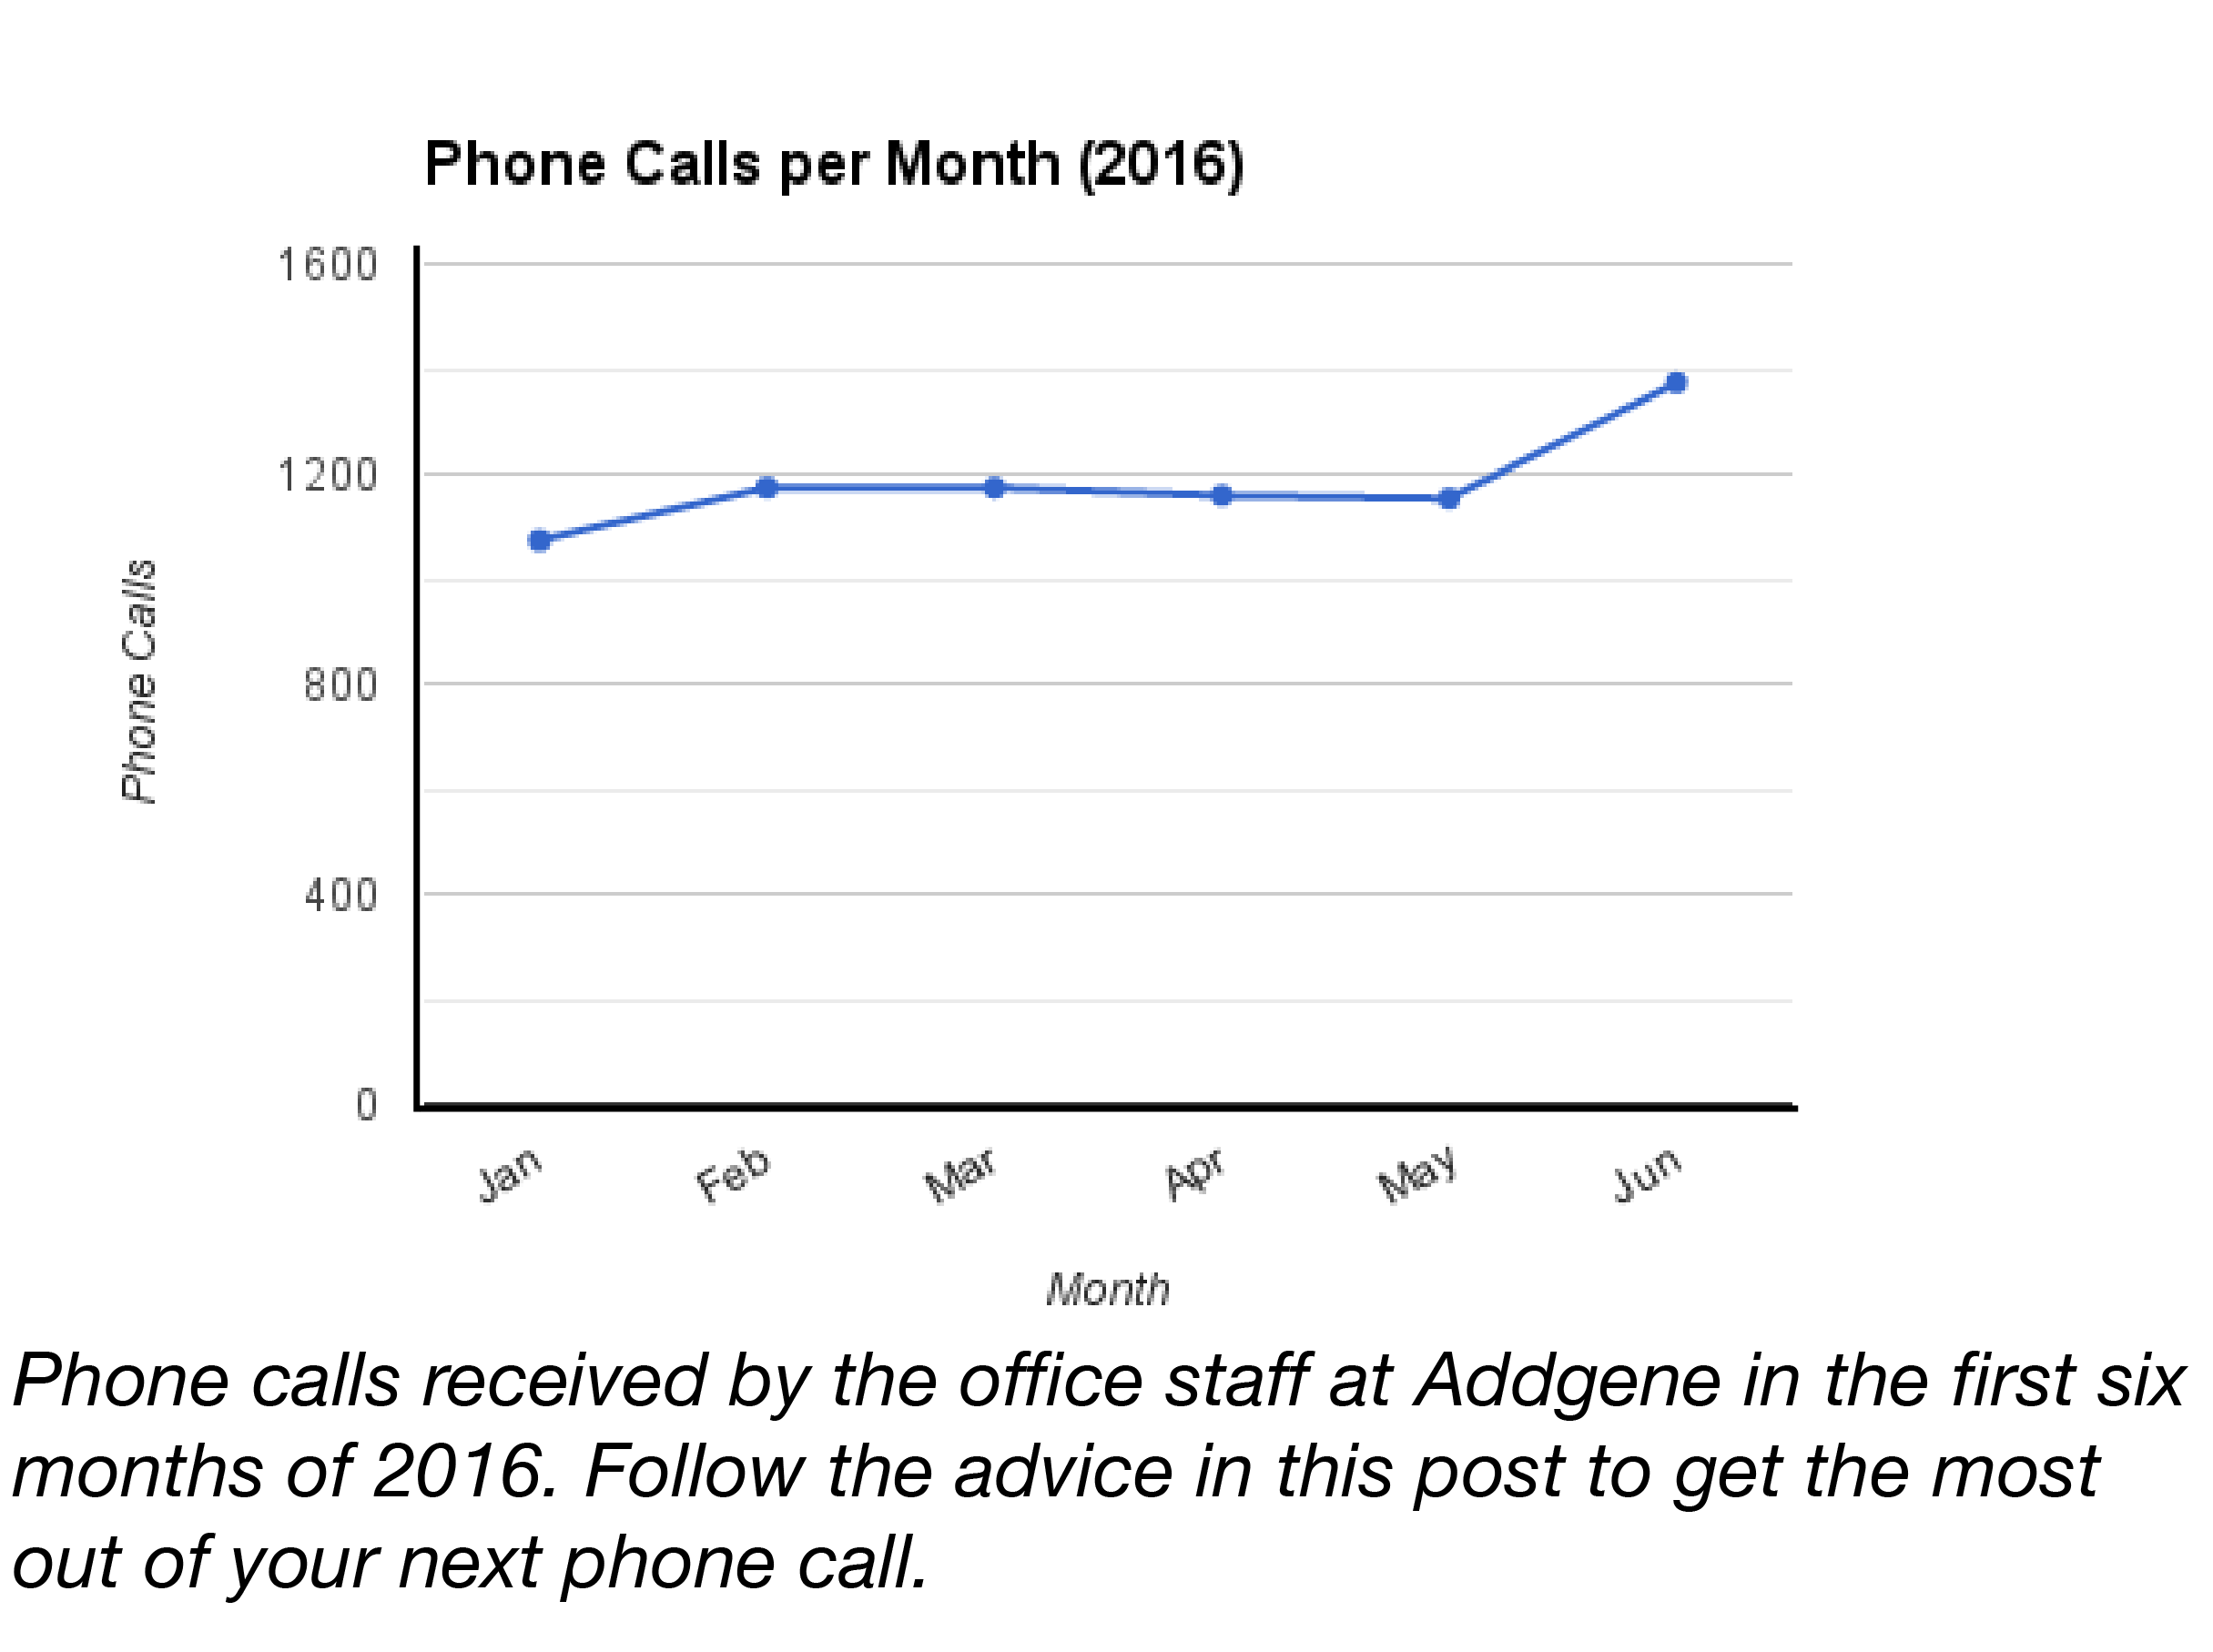 Phone Calls to Addgene Per Month